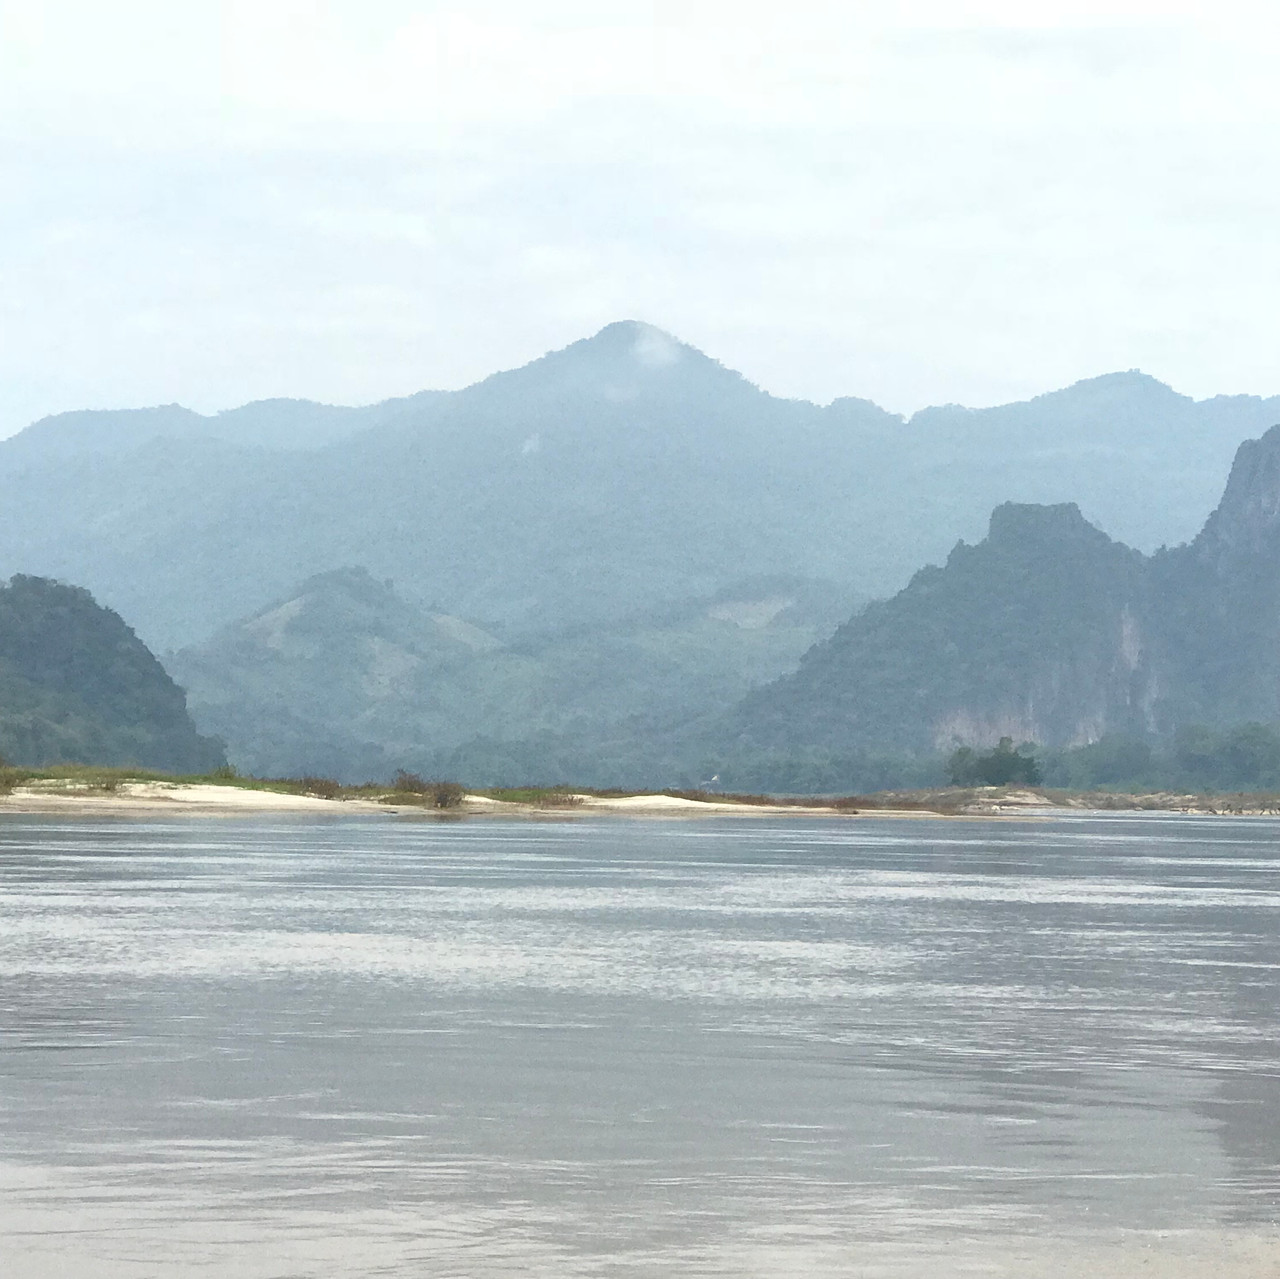 the mighty Mekong